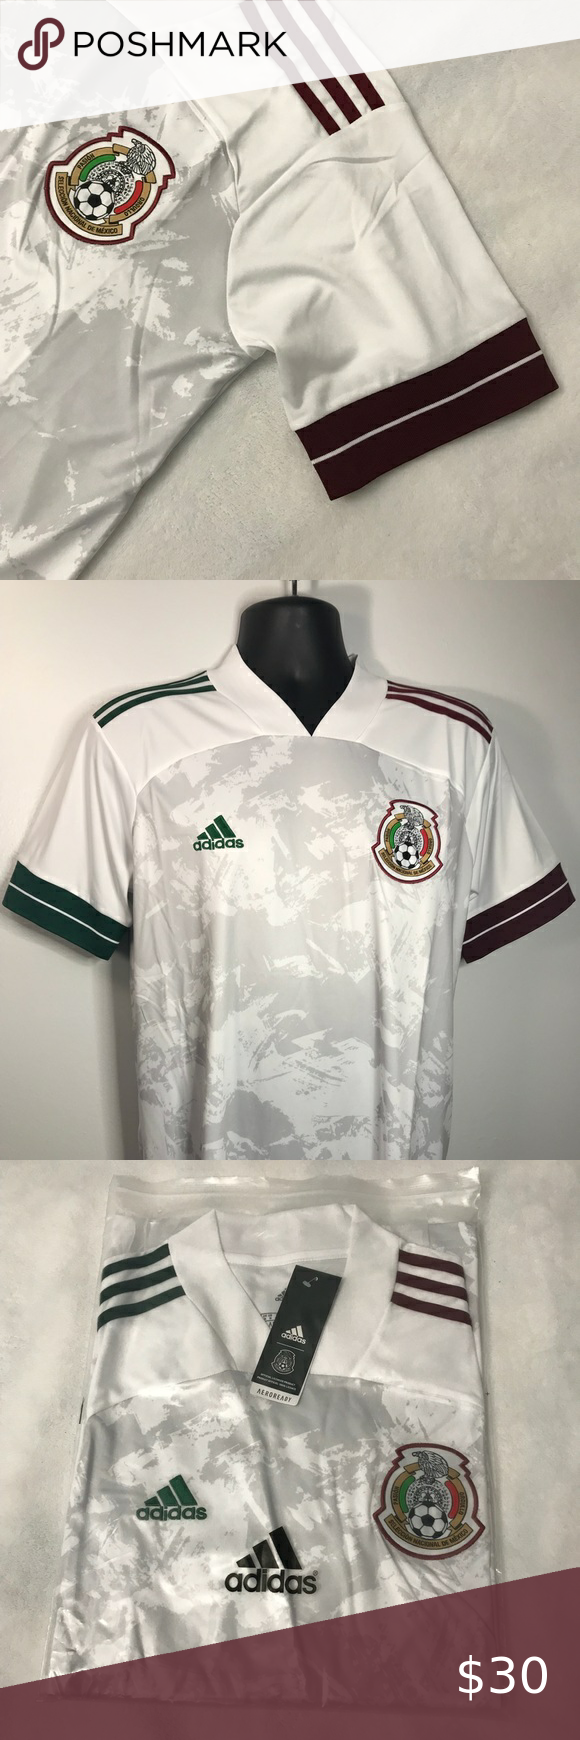 New 2020 Mexico White Away Soccer Jersey In 2020 Soccer Jersey Adidas Shirt Colorful Shirts